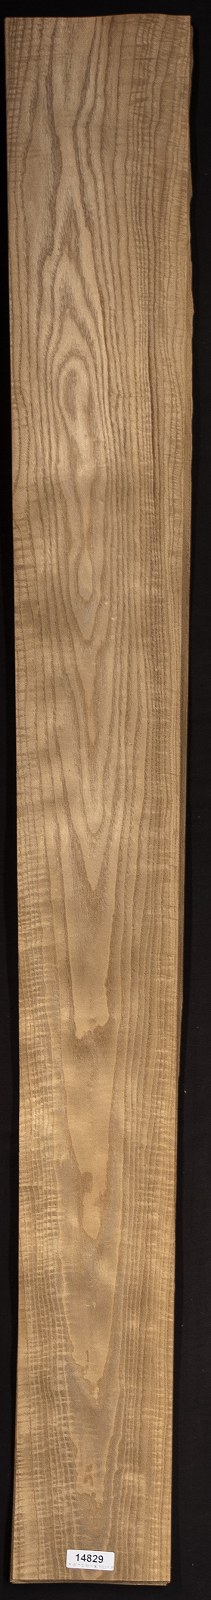 AAA Curly/Flat Cut Sassafras Veneer Sheet